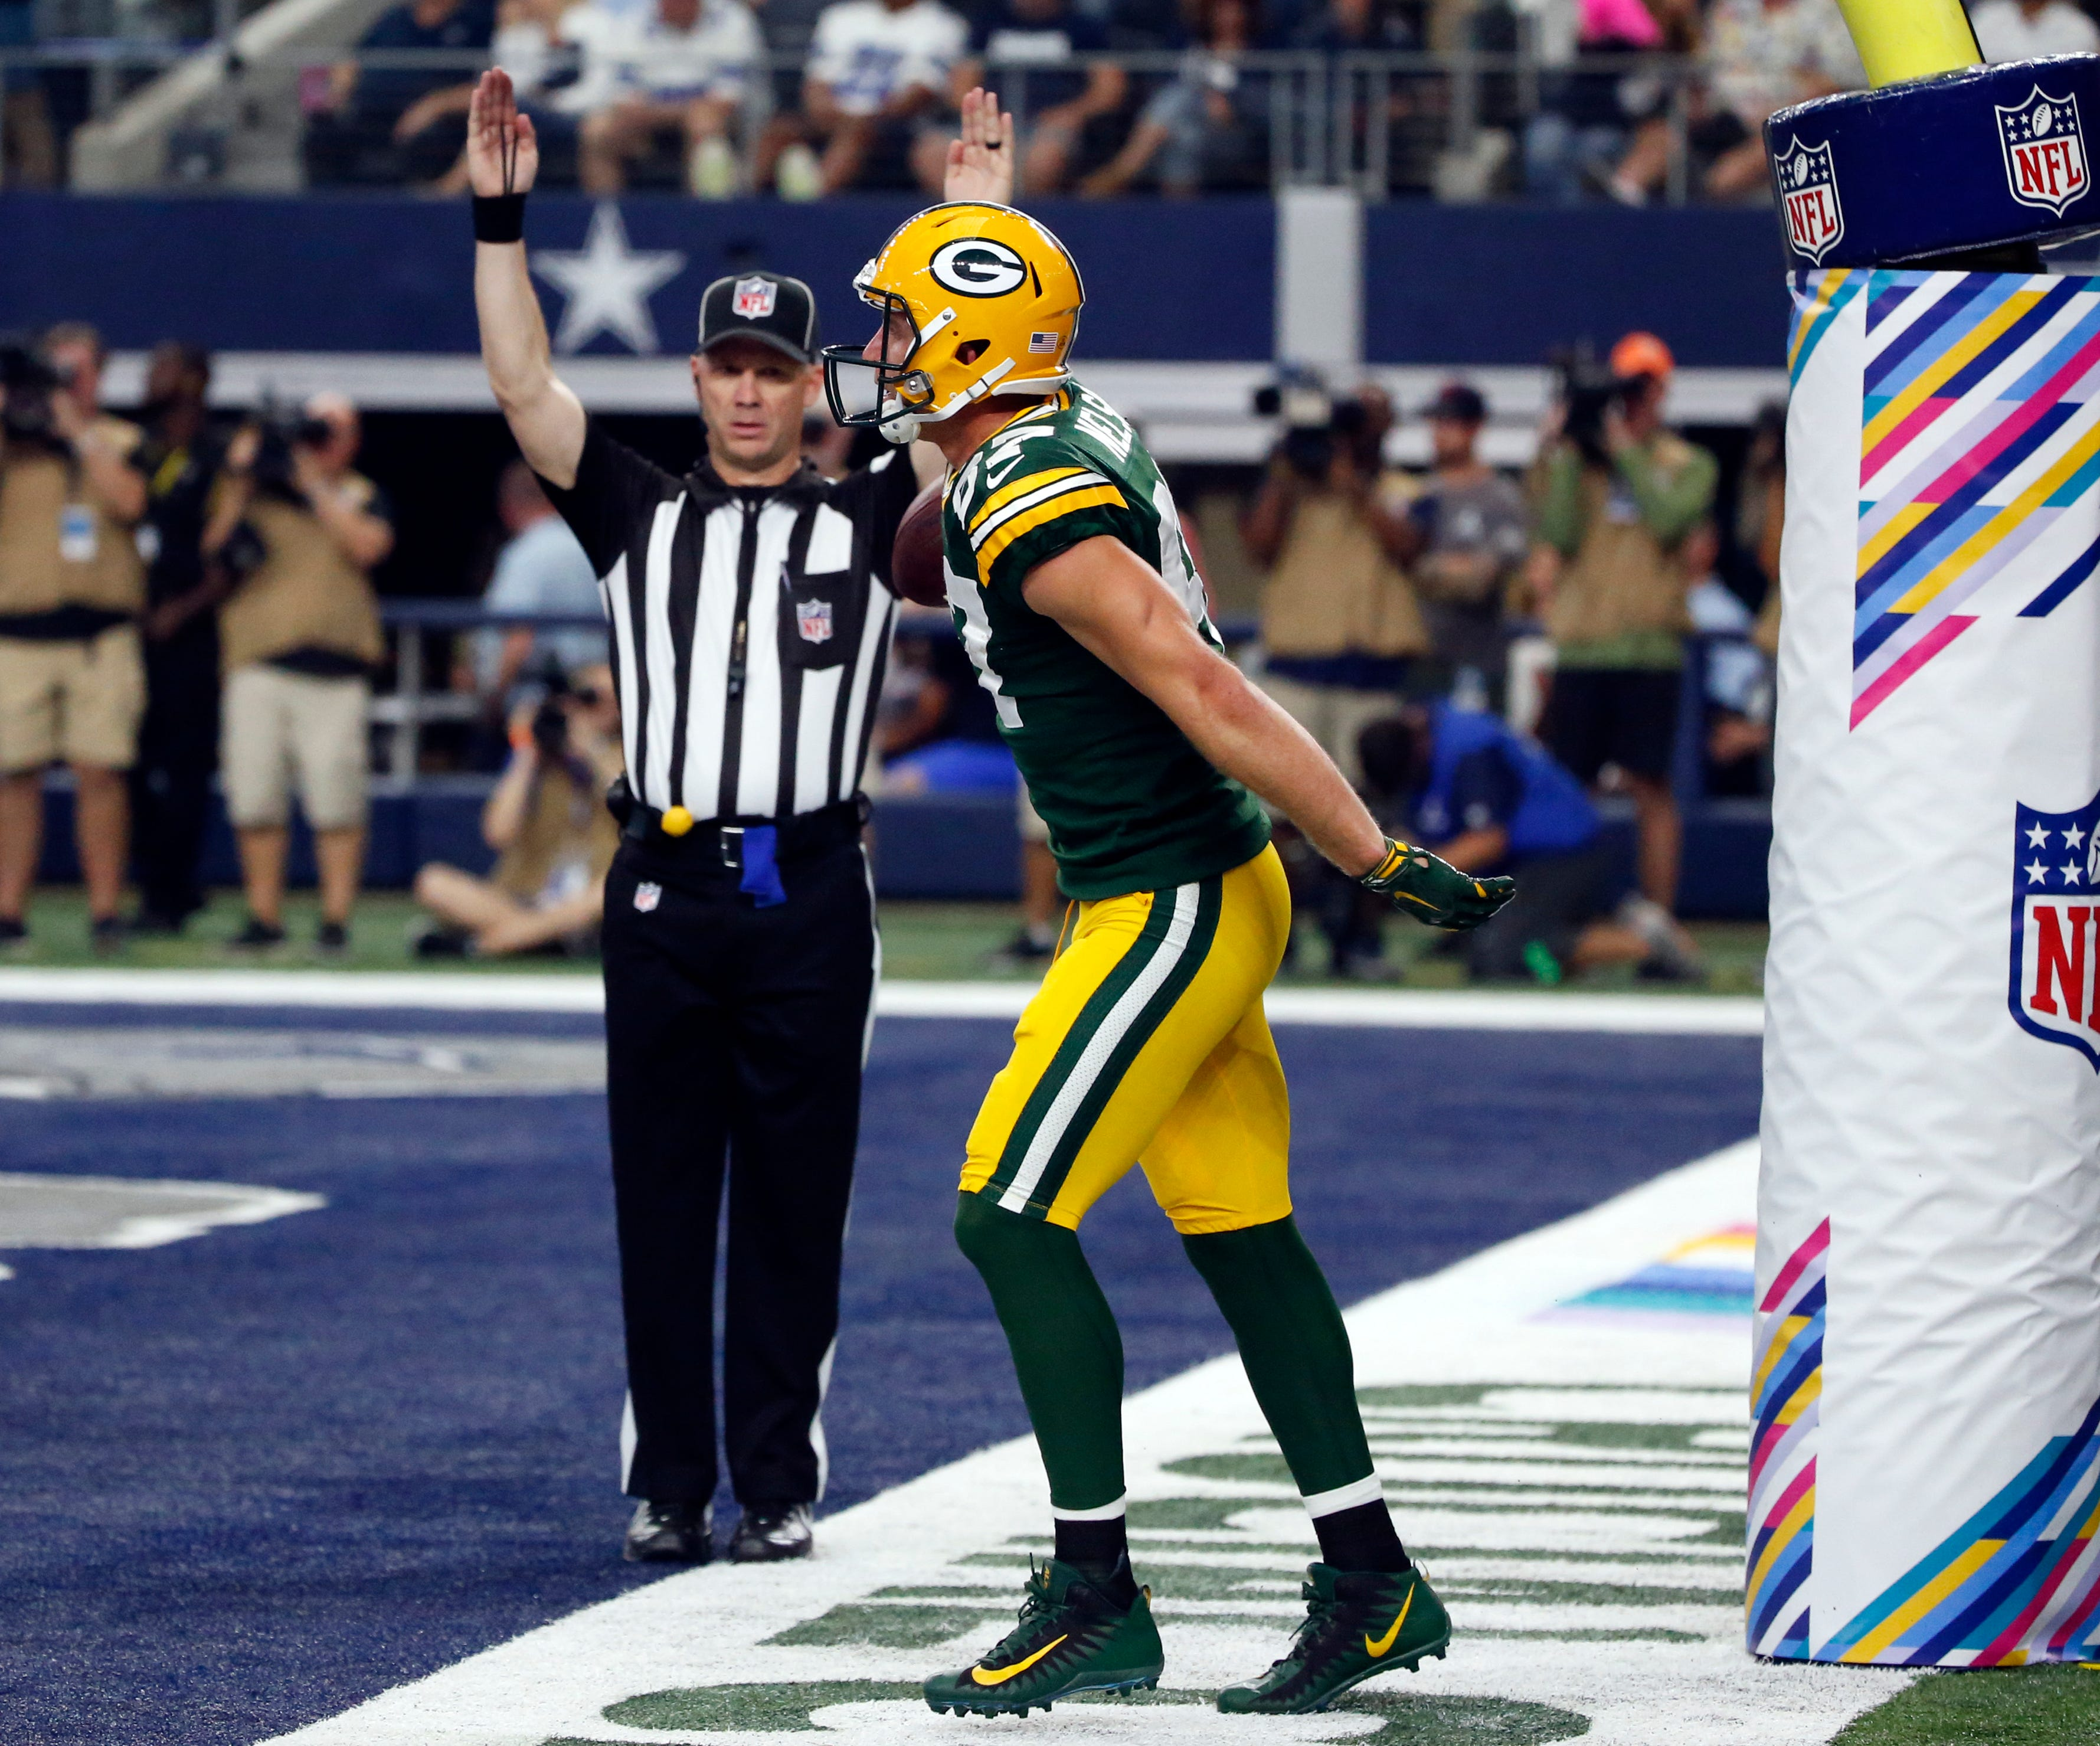 WR Jordy Nelson back at practice after minor back injury